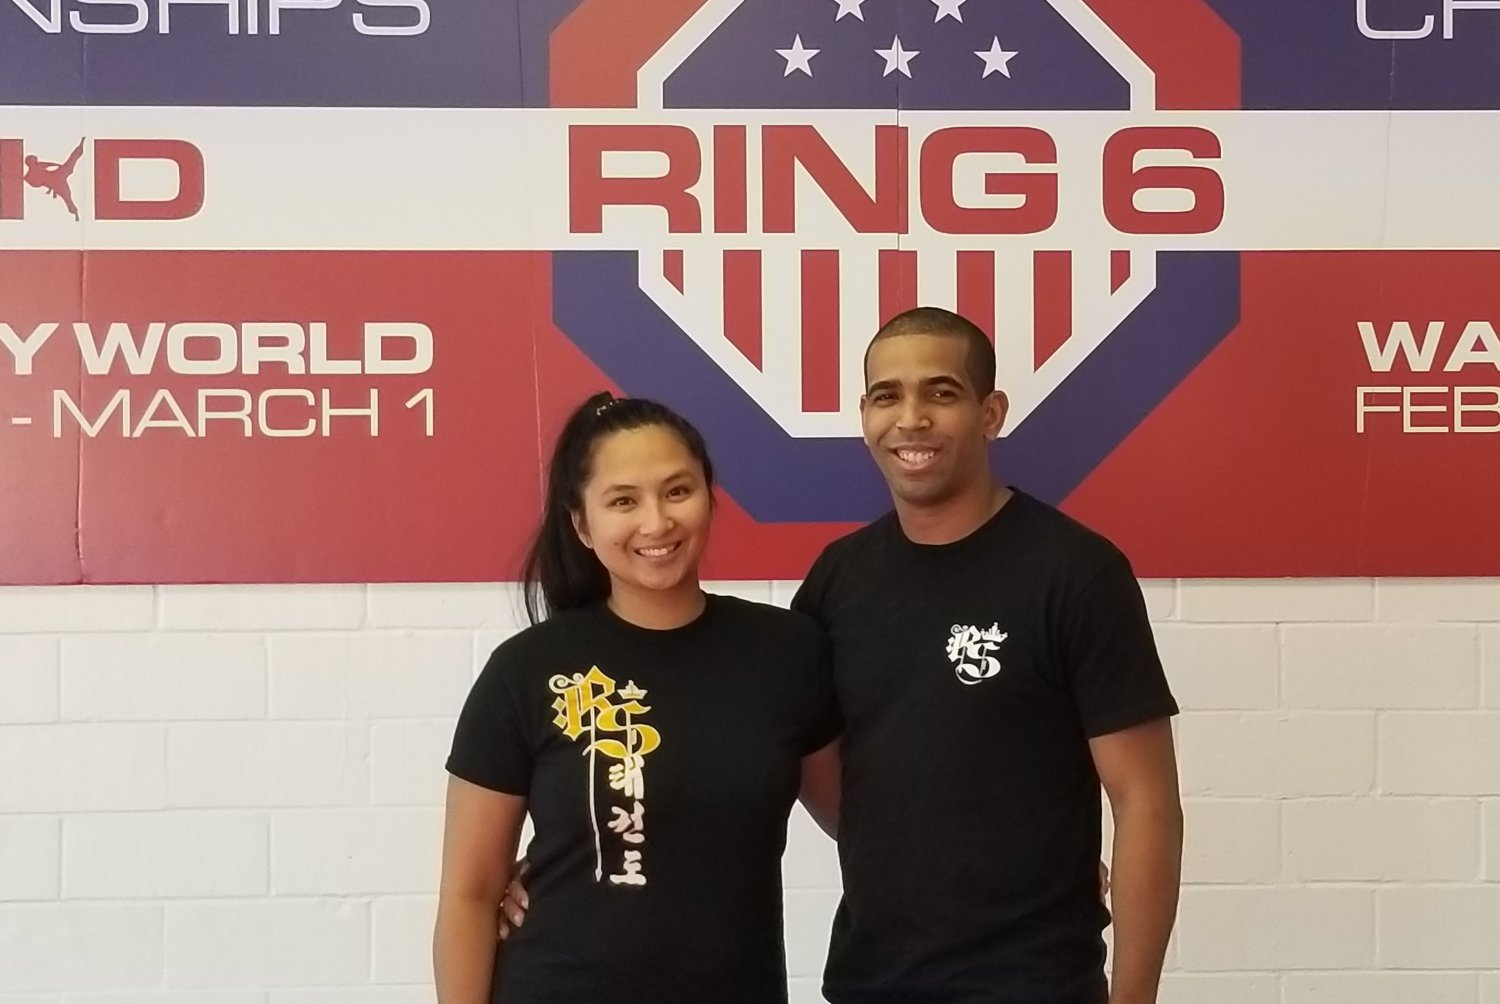 Joseph Santarose (right) and his wife Erika Erica (left) are the owner-operators of Rock Solid Martial Arts in Old Town Katy. Erica kept her maiden name when the pair got married because she thought it was a fun part of her personality that she didn't want to lose.